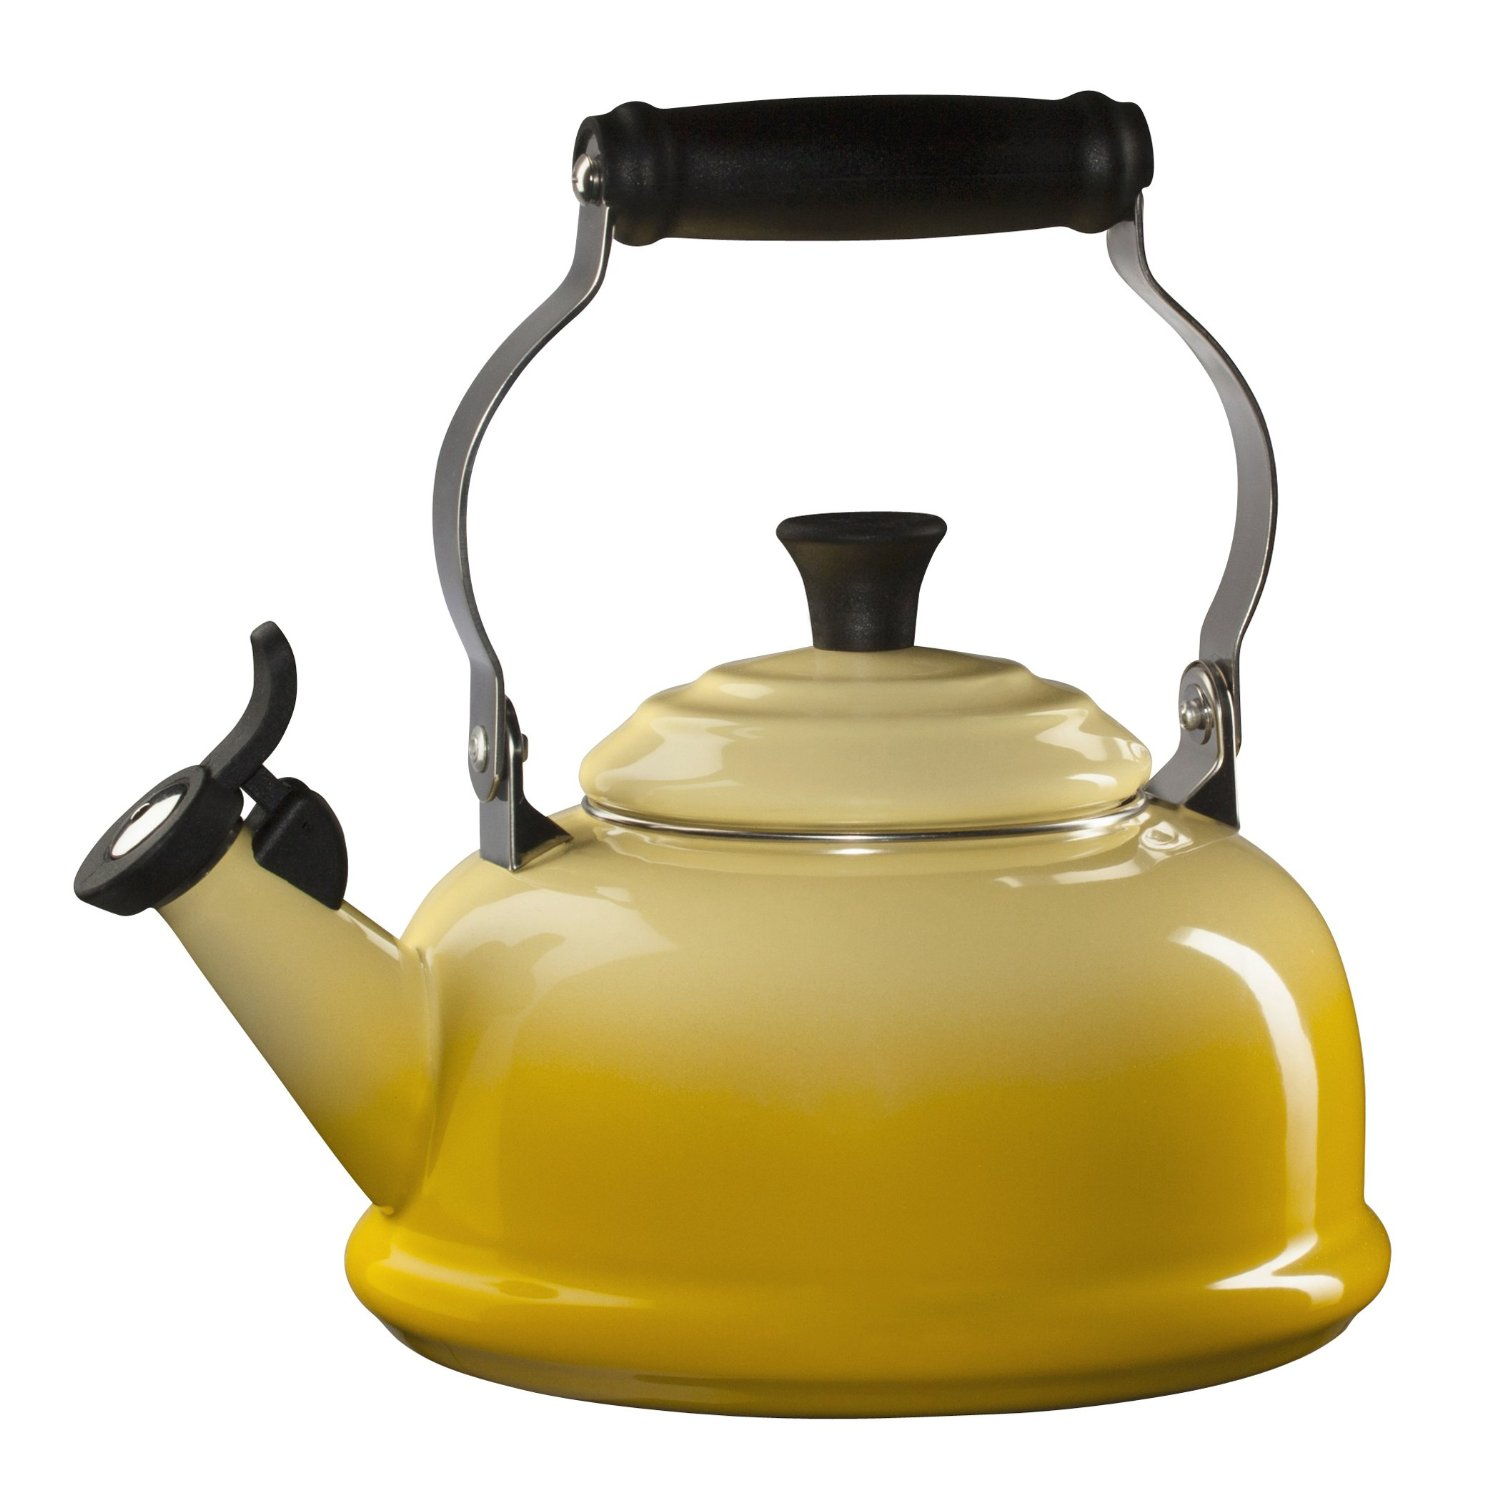 Exciting tea kettles for kitchen and dining room with copper tea kettle